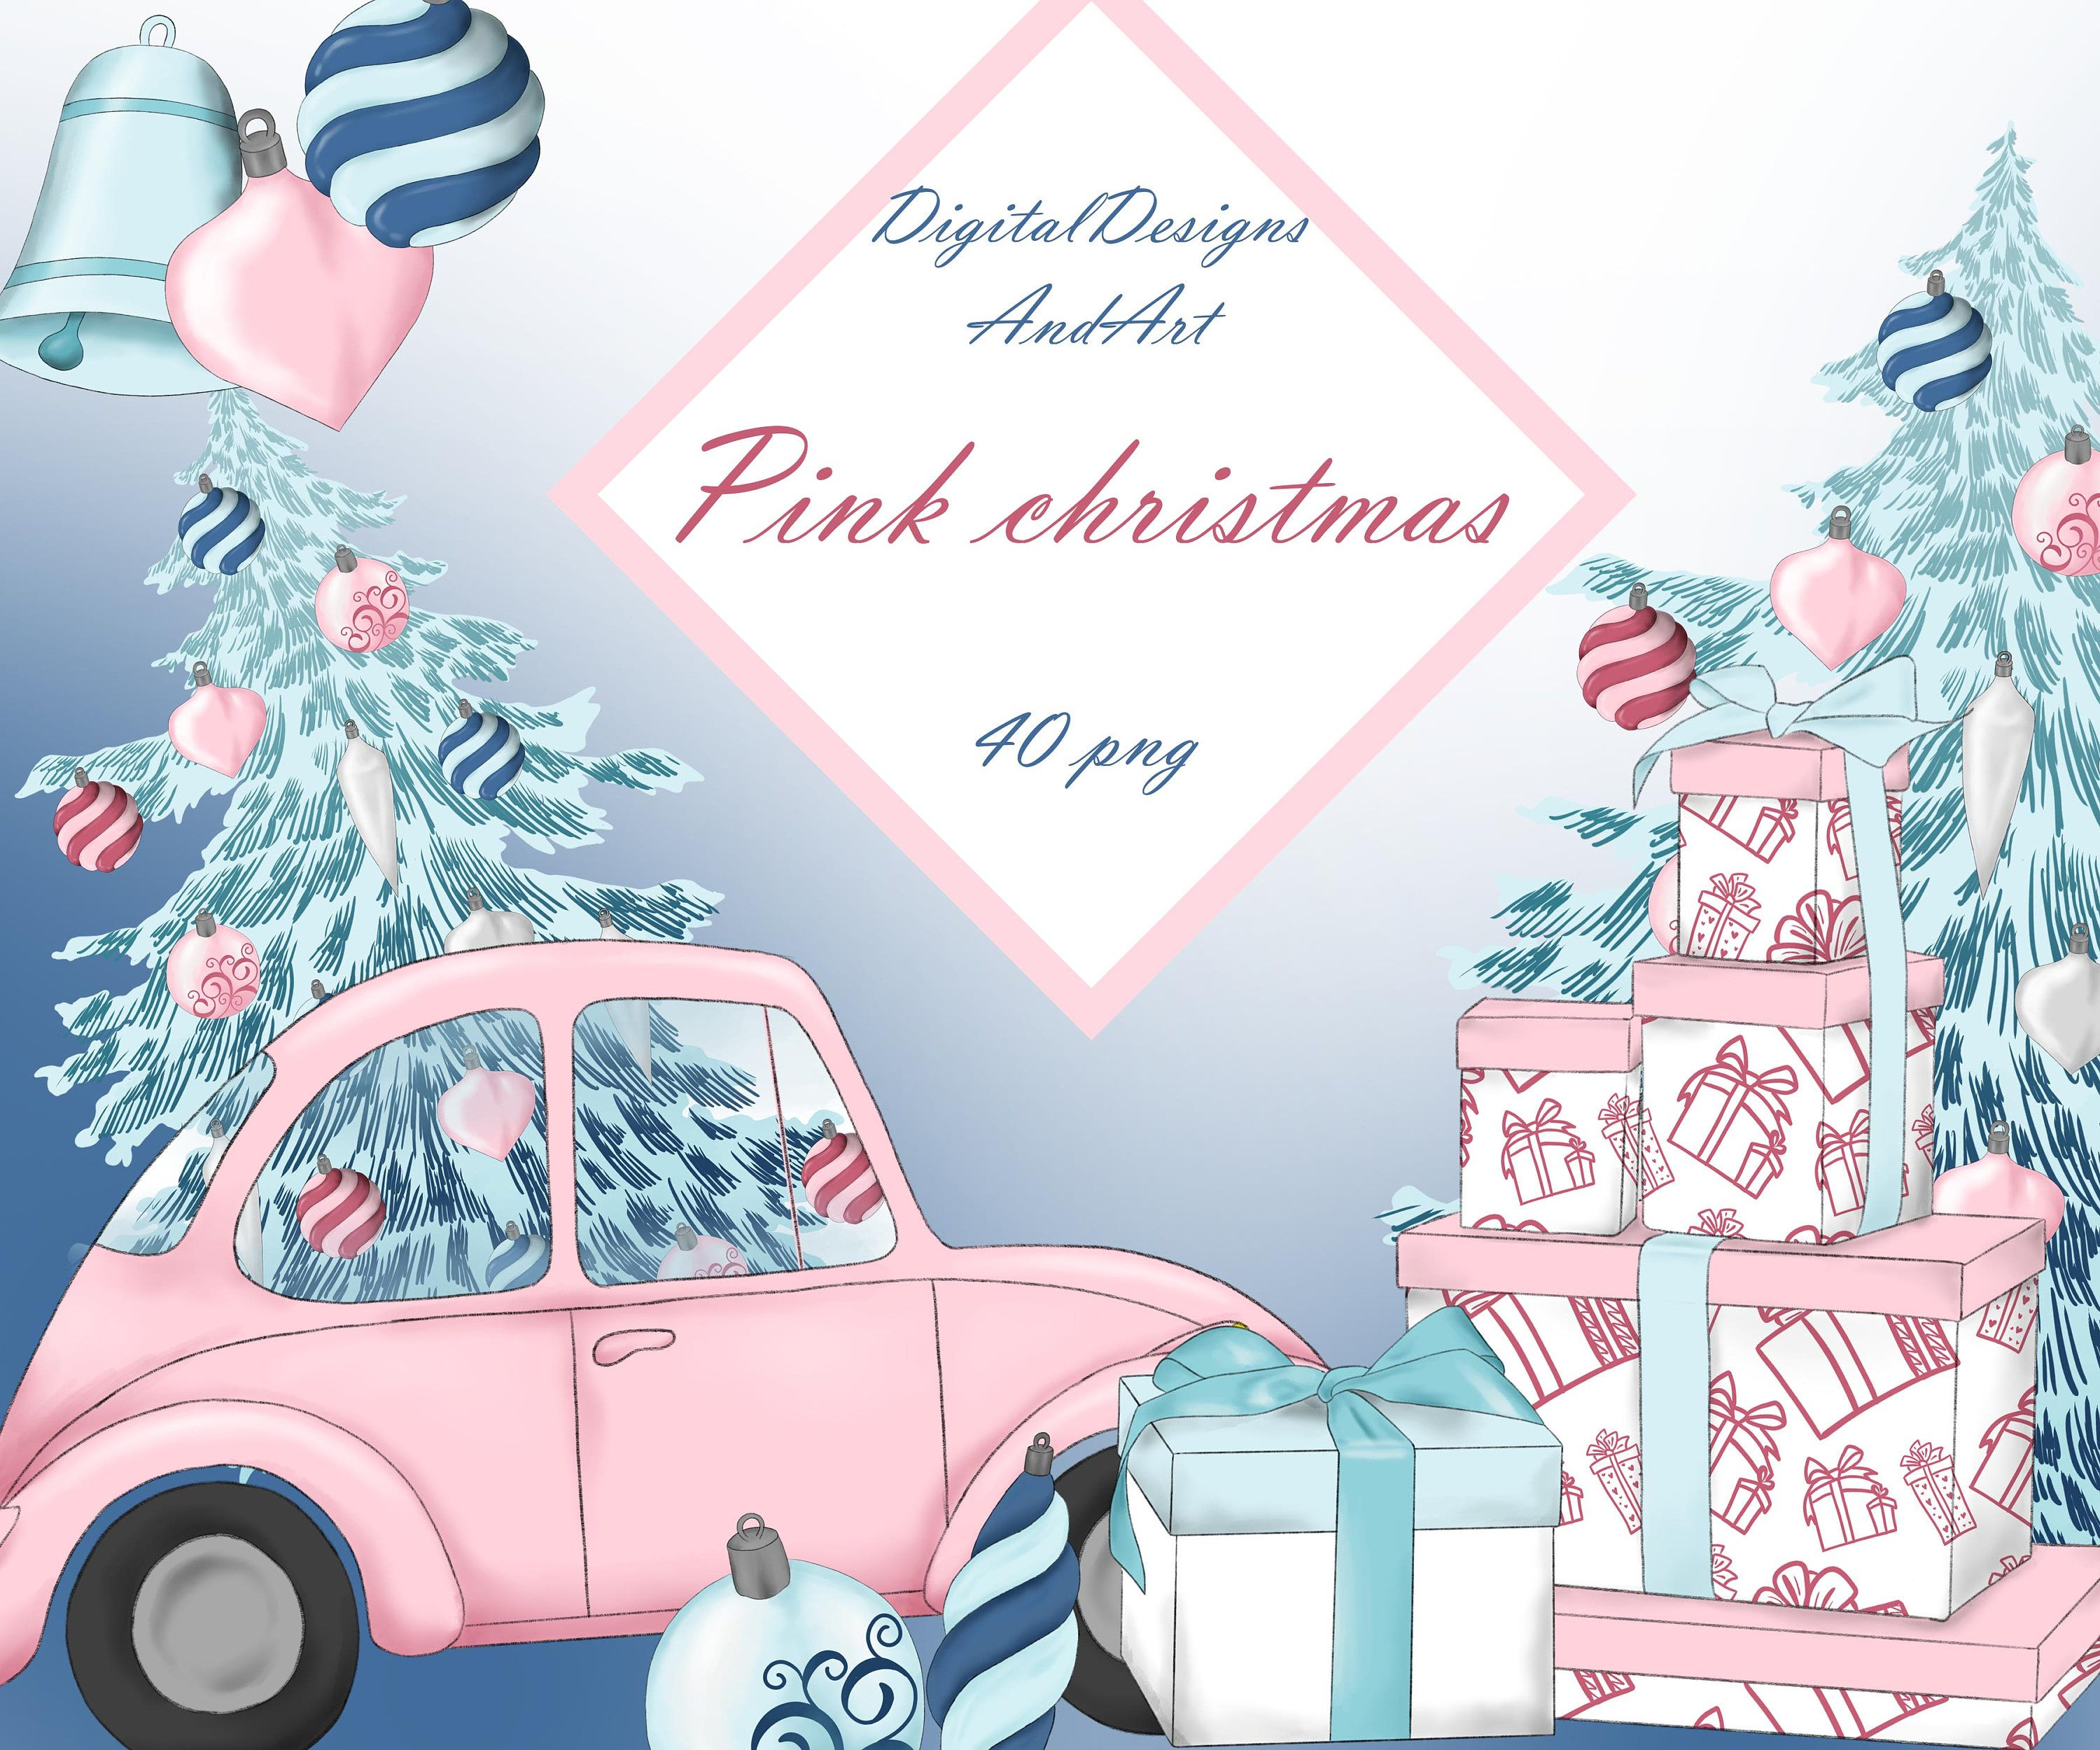 Toys images clip art  Pink christmas clipart Watercolor clipart Xmas clipart Christmas